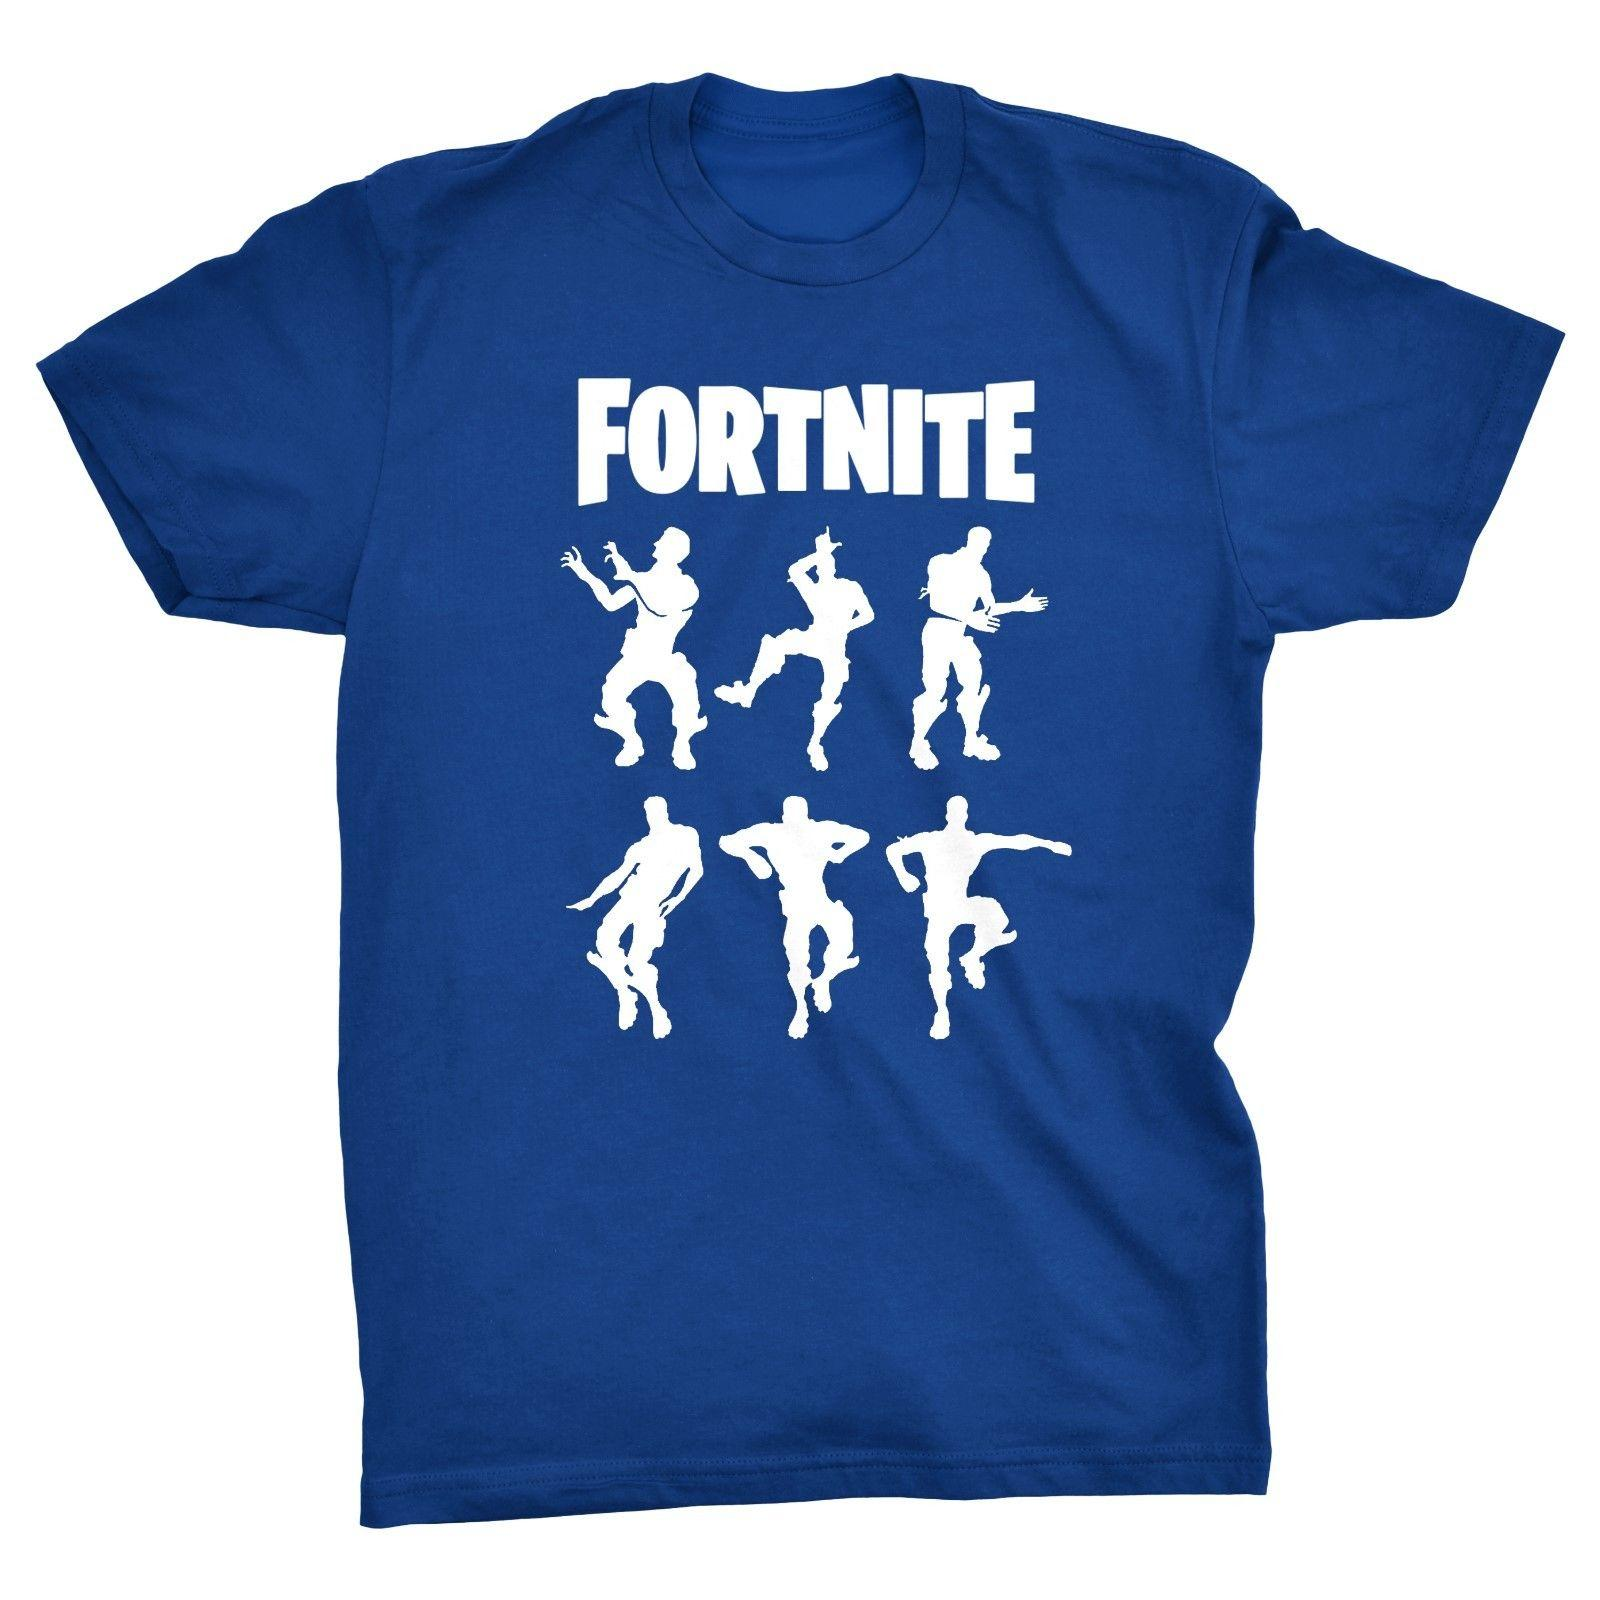 994fbf8f Fortnite Celebrations T-Shirt Adult Child Kids Gaming Dance Dab Flossing  Floss Tops wholesale Tee custom Environmental 2018 hot tees